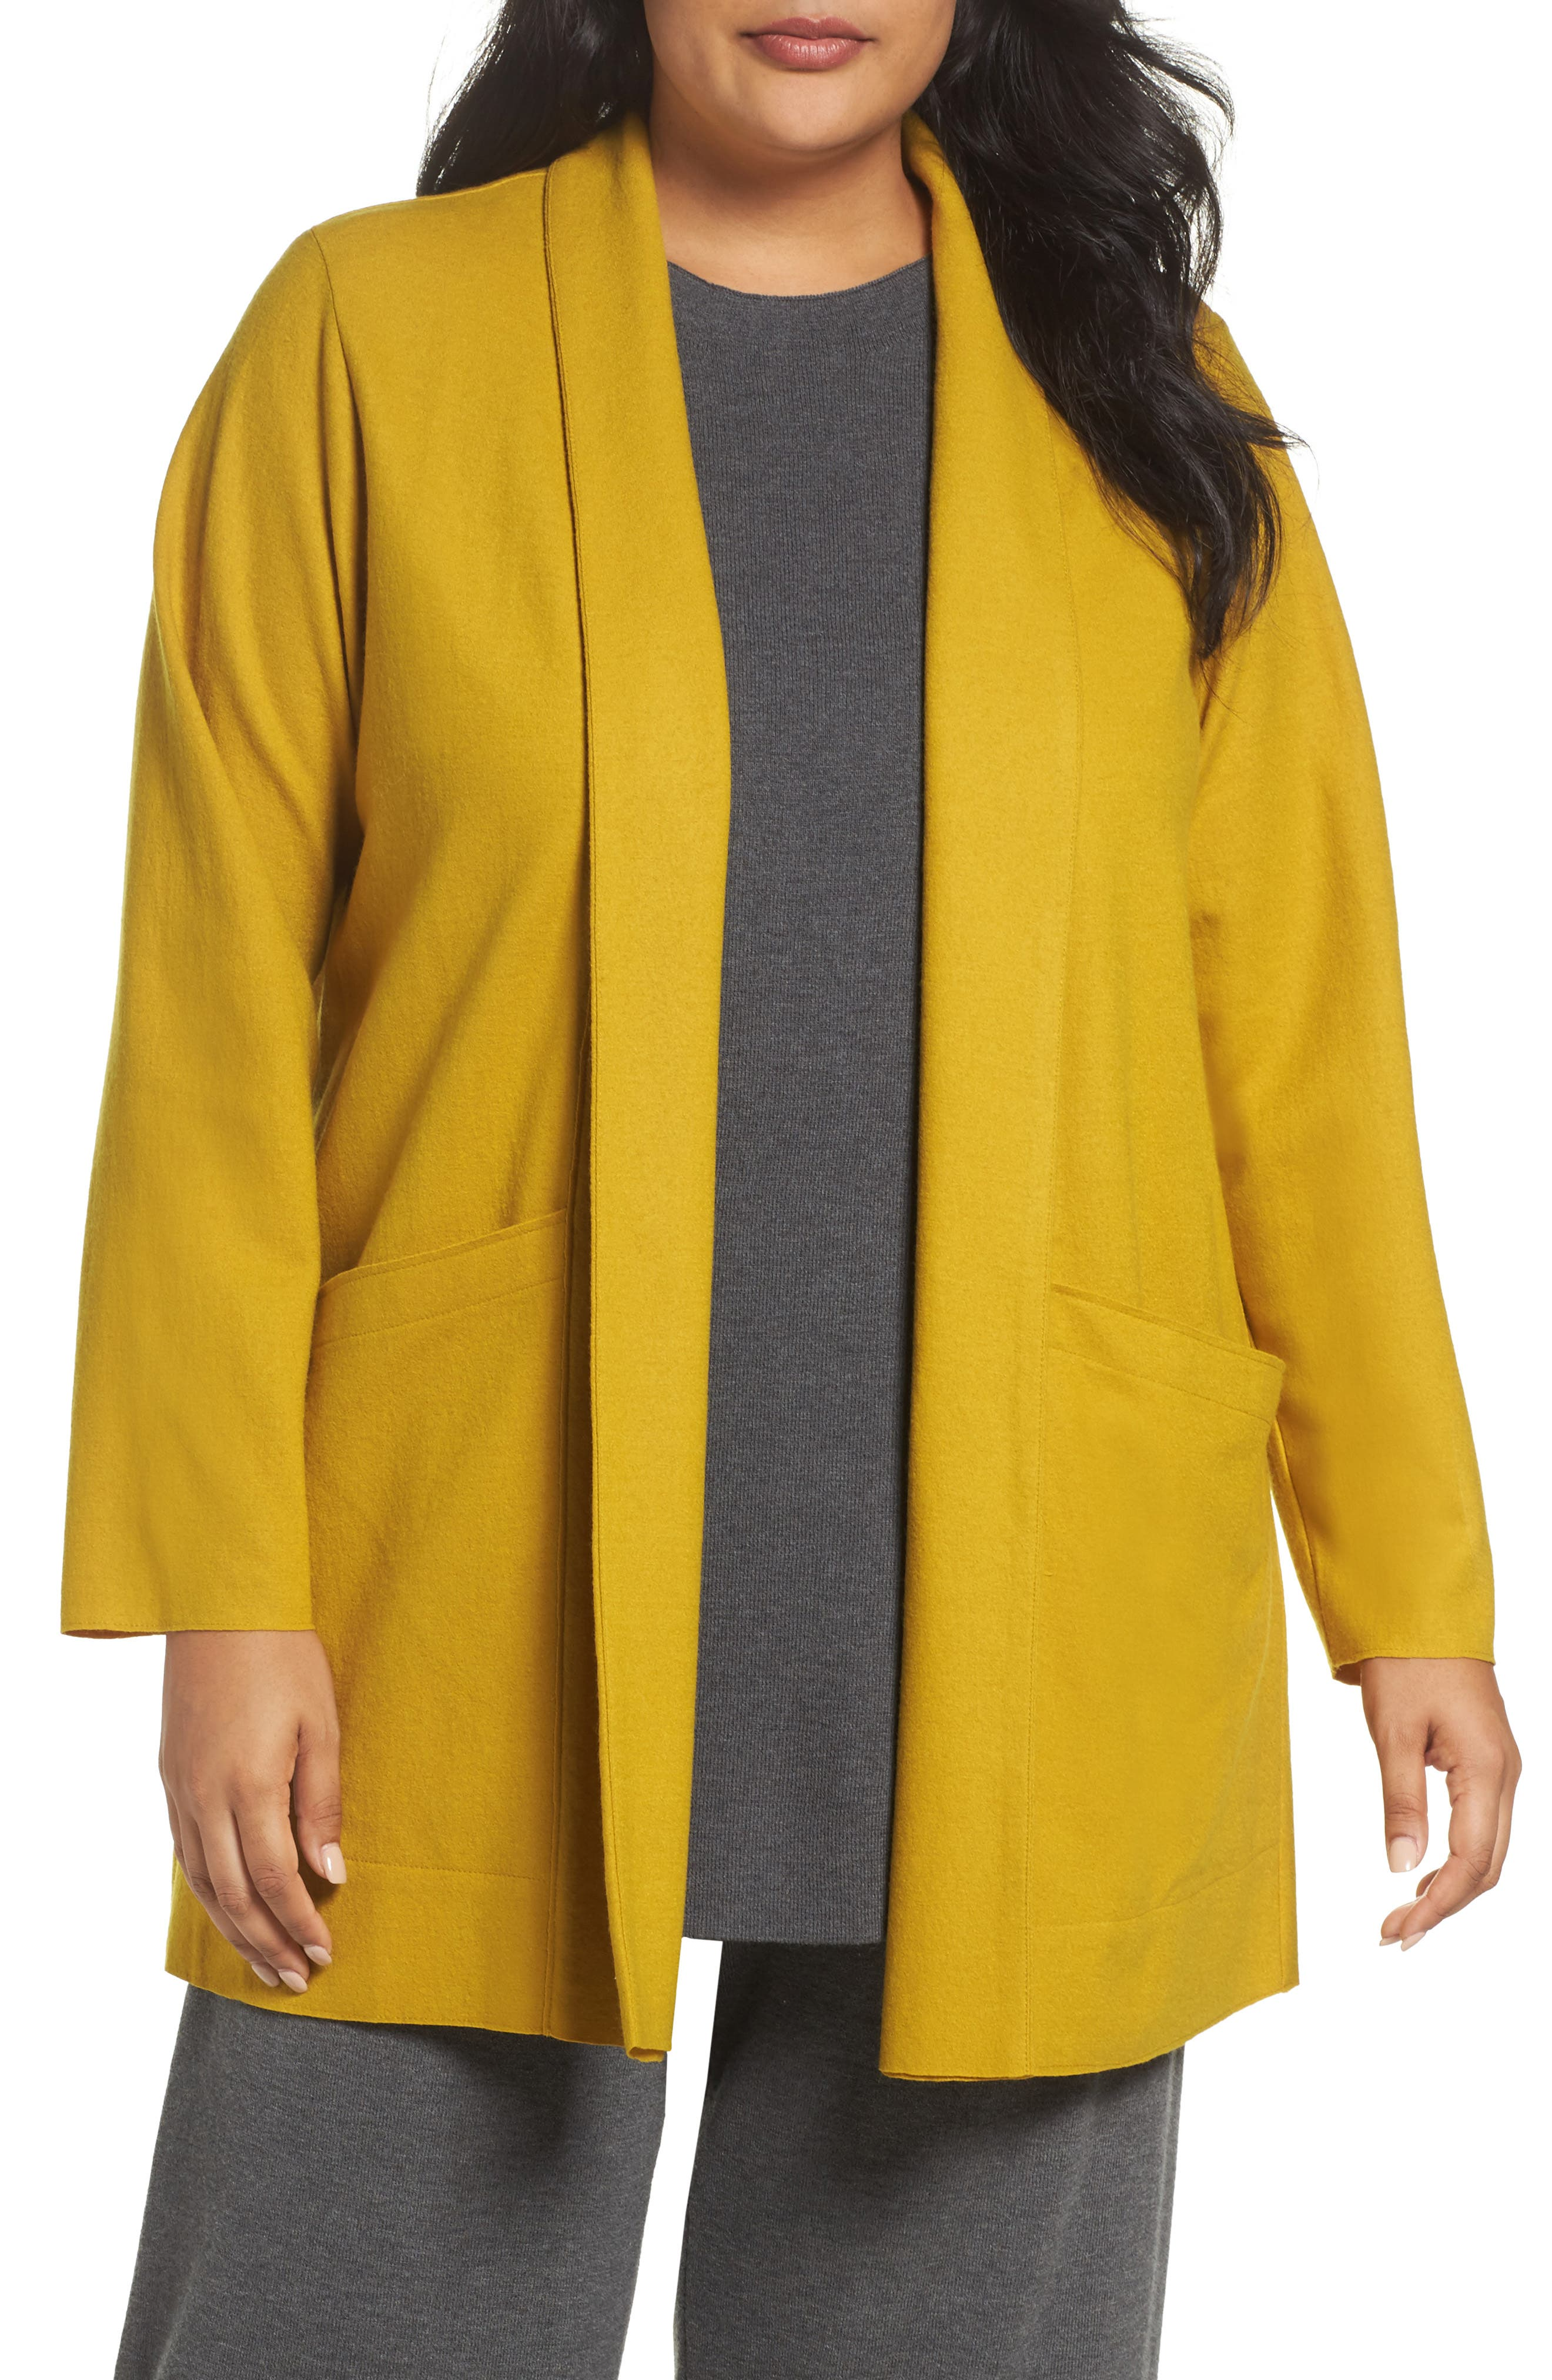 Main Image - Eileen Fisher Boiled Wool Jacket (Plus Size)